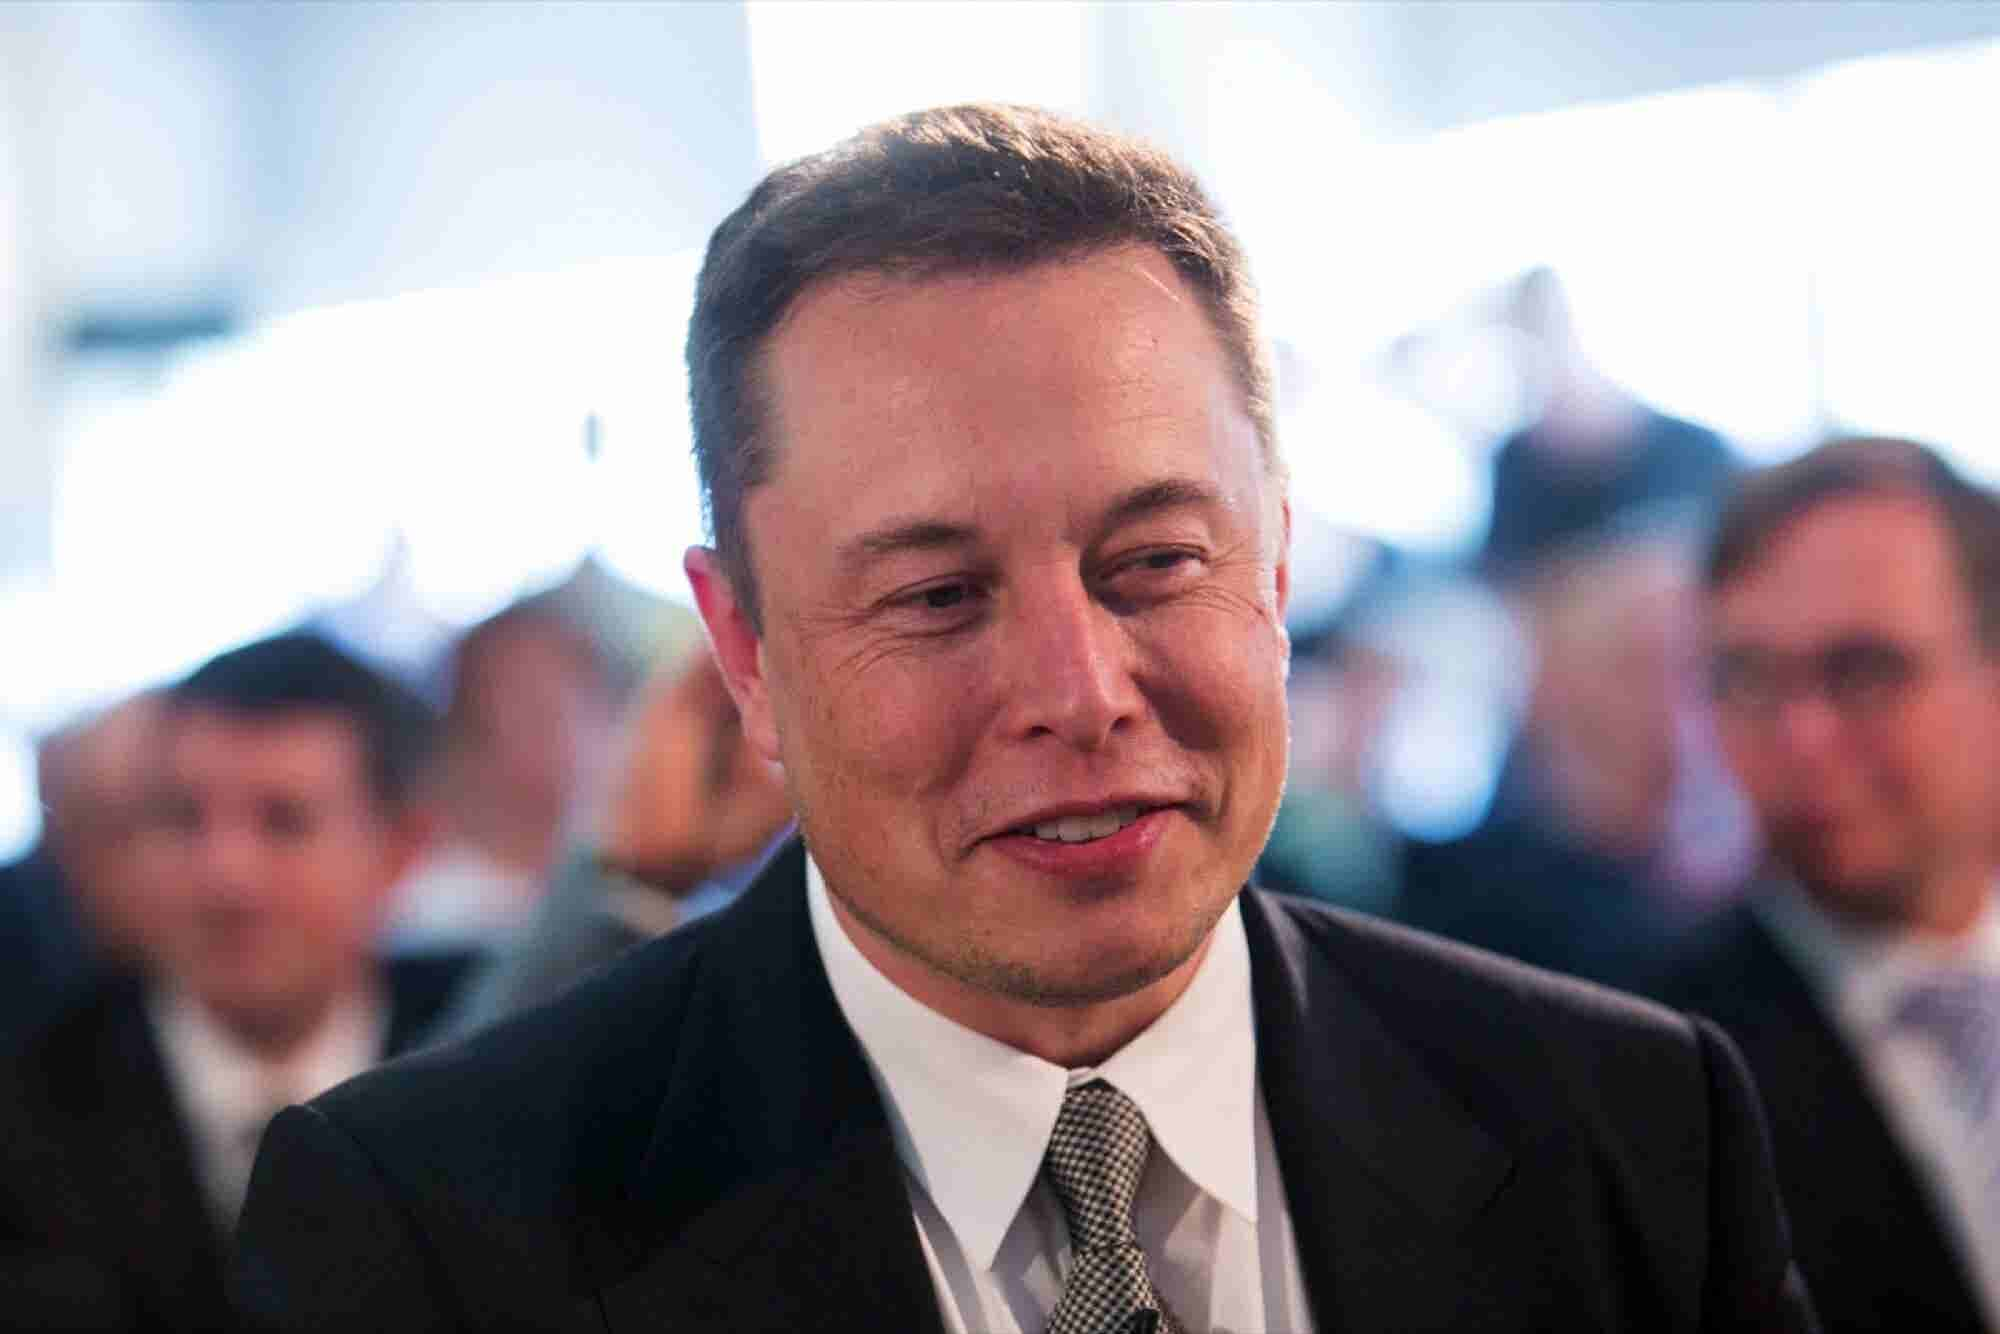 7 Takeaways in the Success of Elon Musk for Young Entrepreneurs